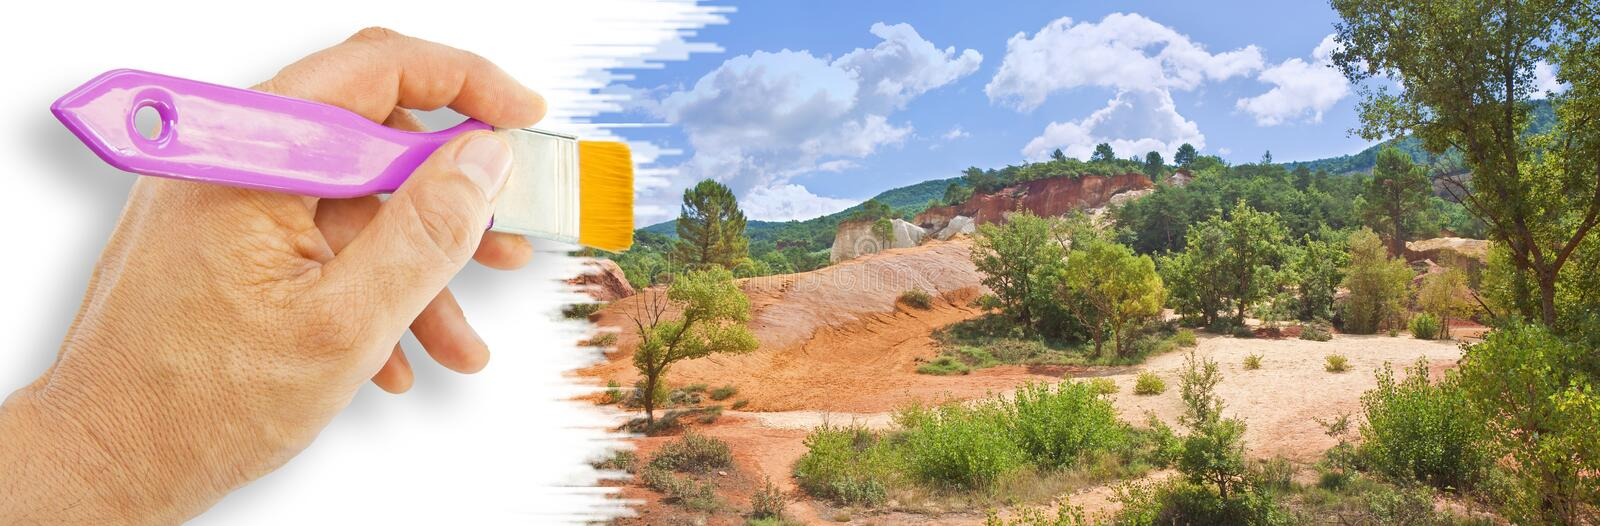 Particular French landscape, in the provence region, called Colorado Provencal with its ocher, yellow and red earth Europe-France. Provence - concept image royalty free stock images